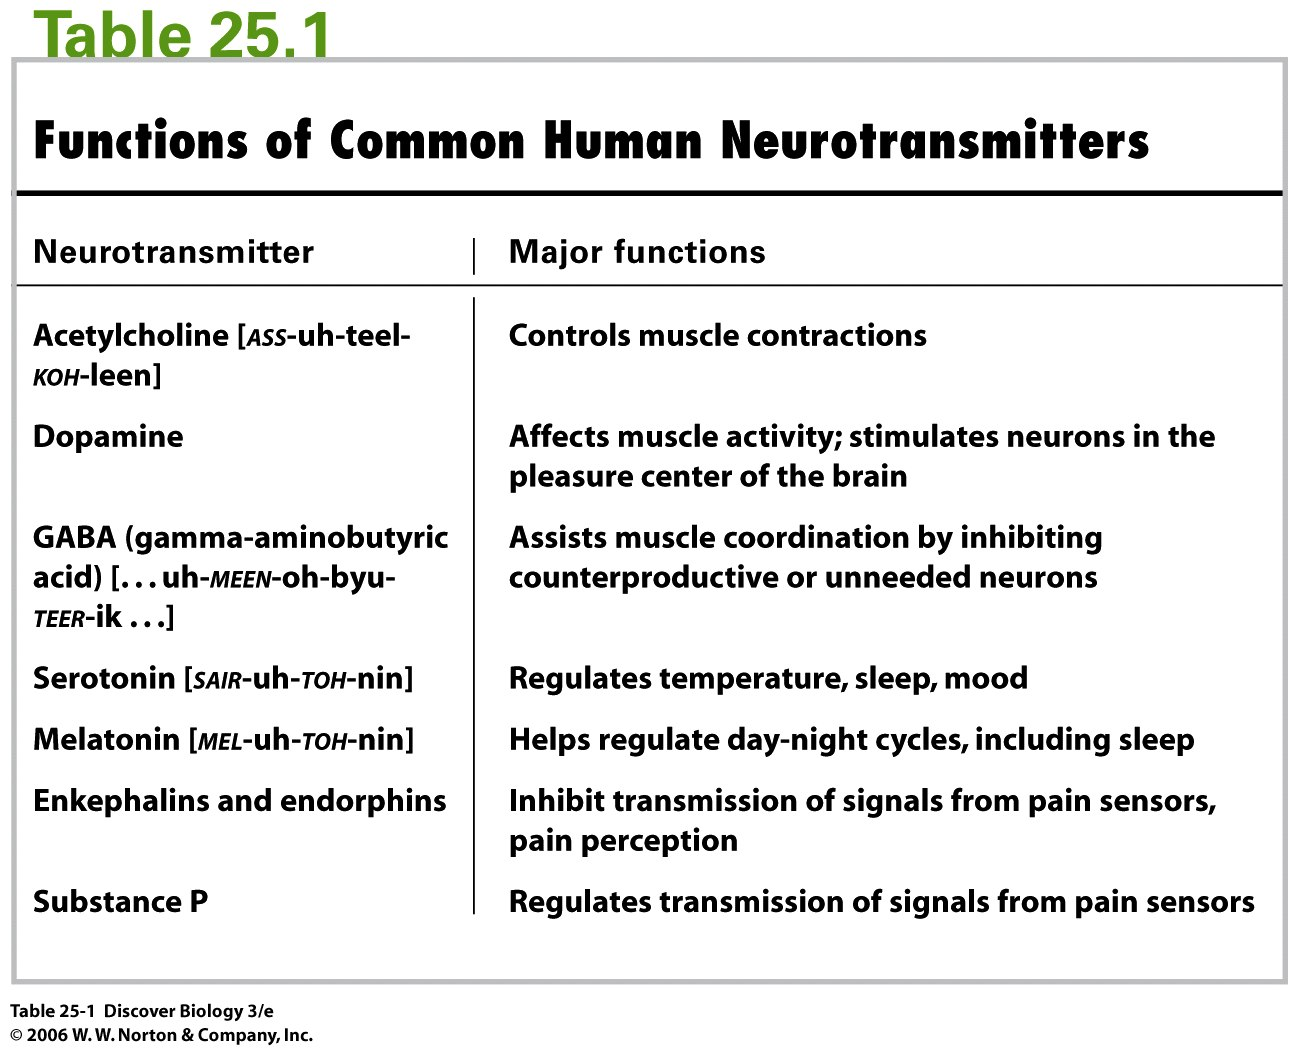 Different Neurotransmitters